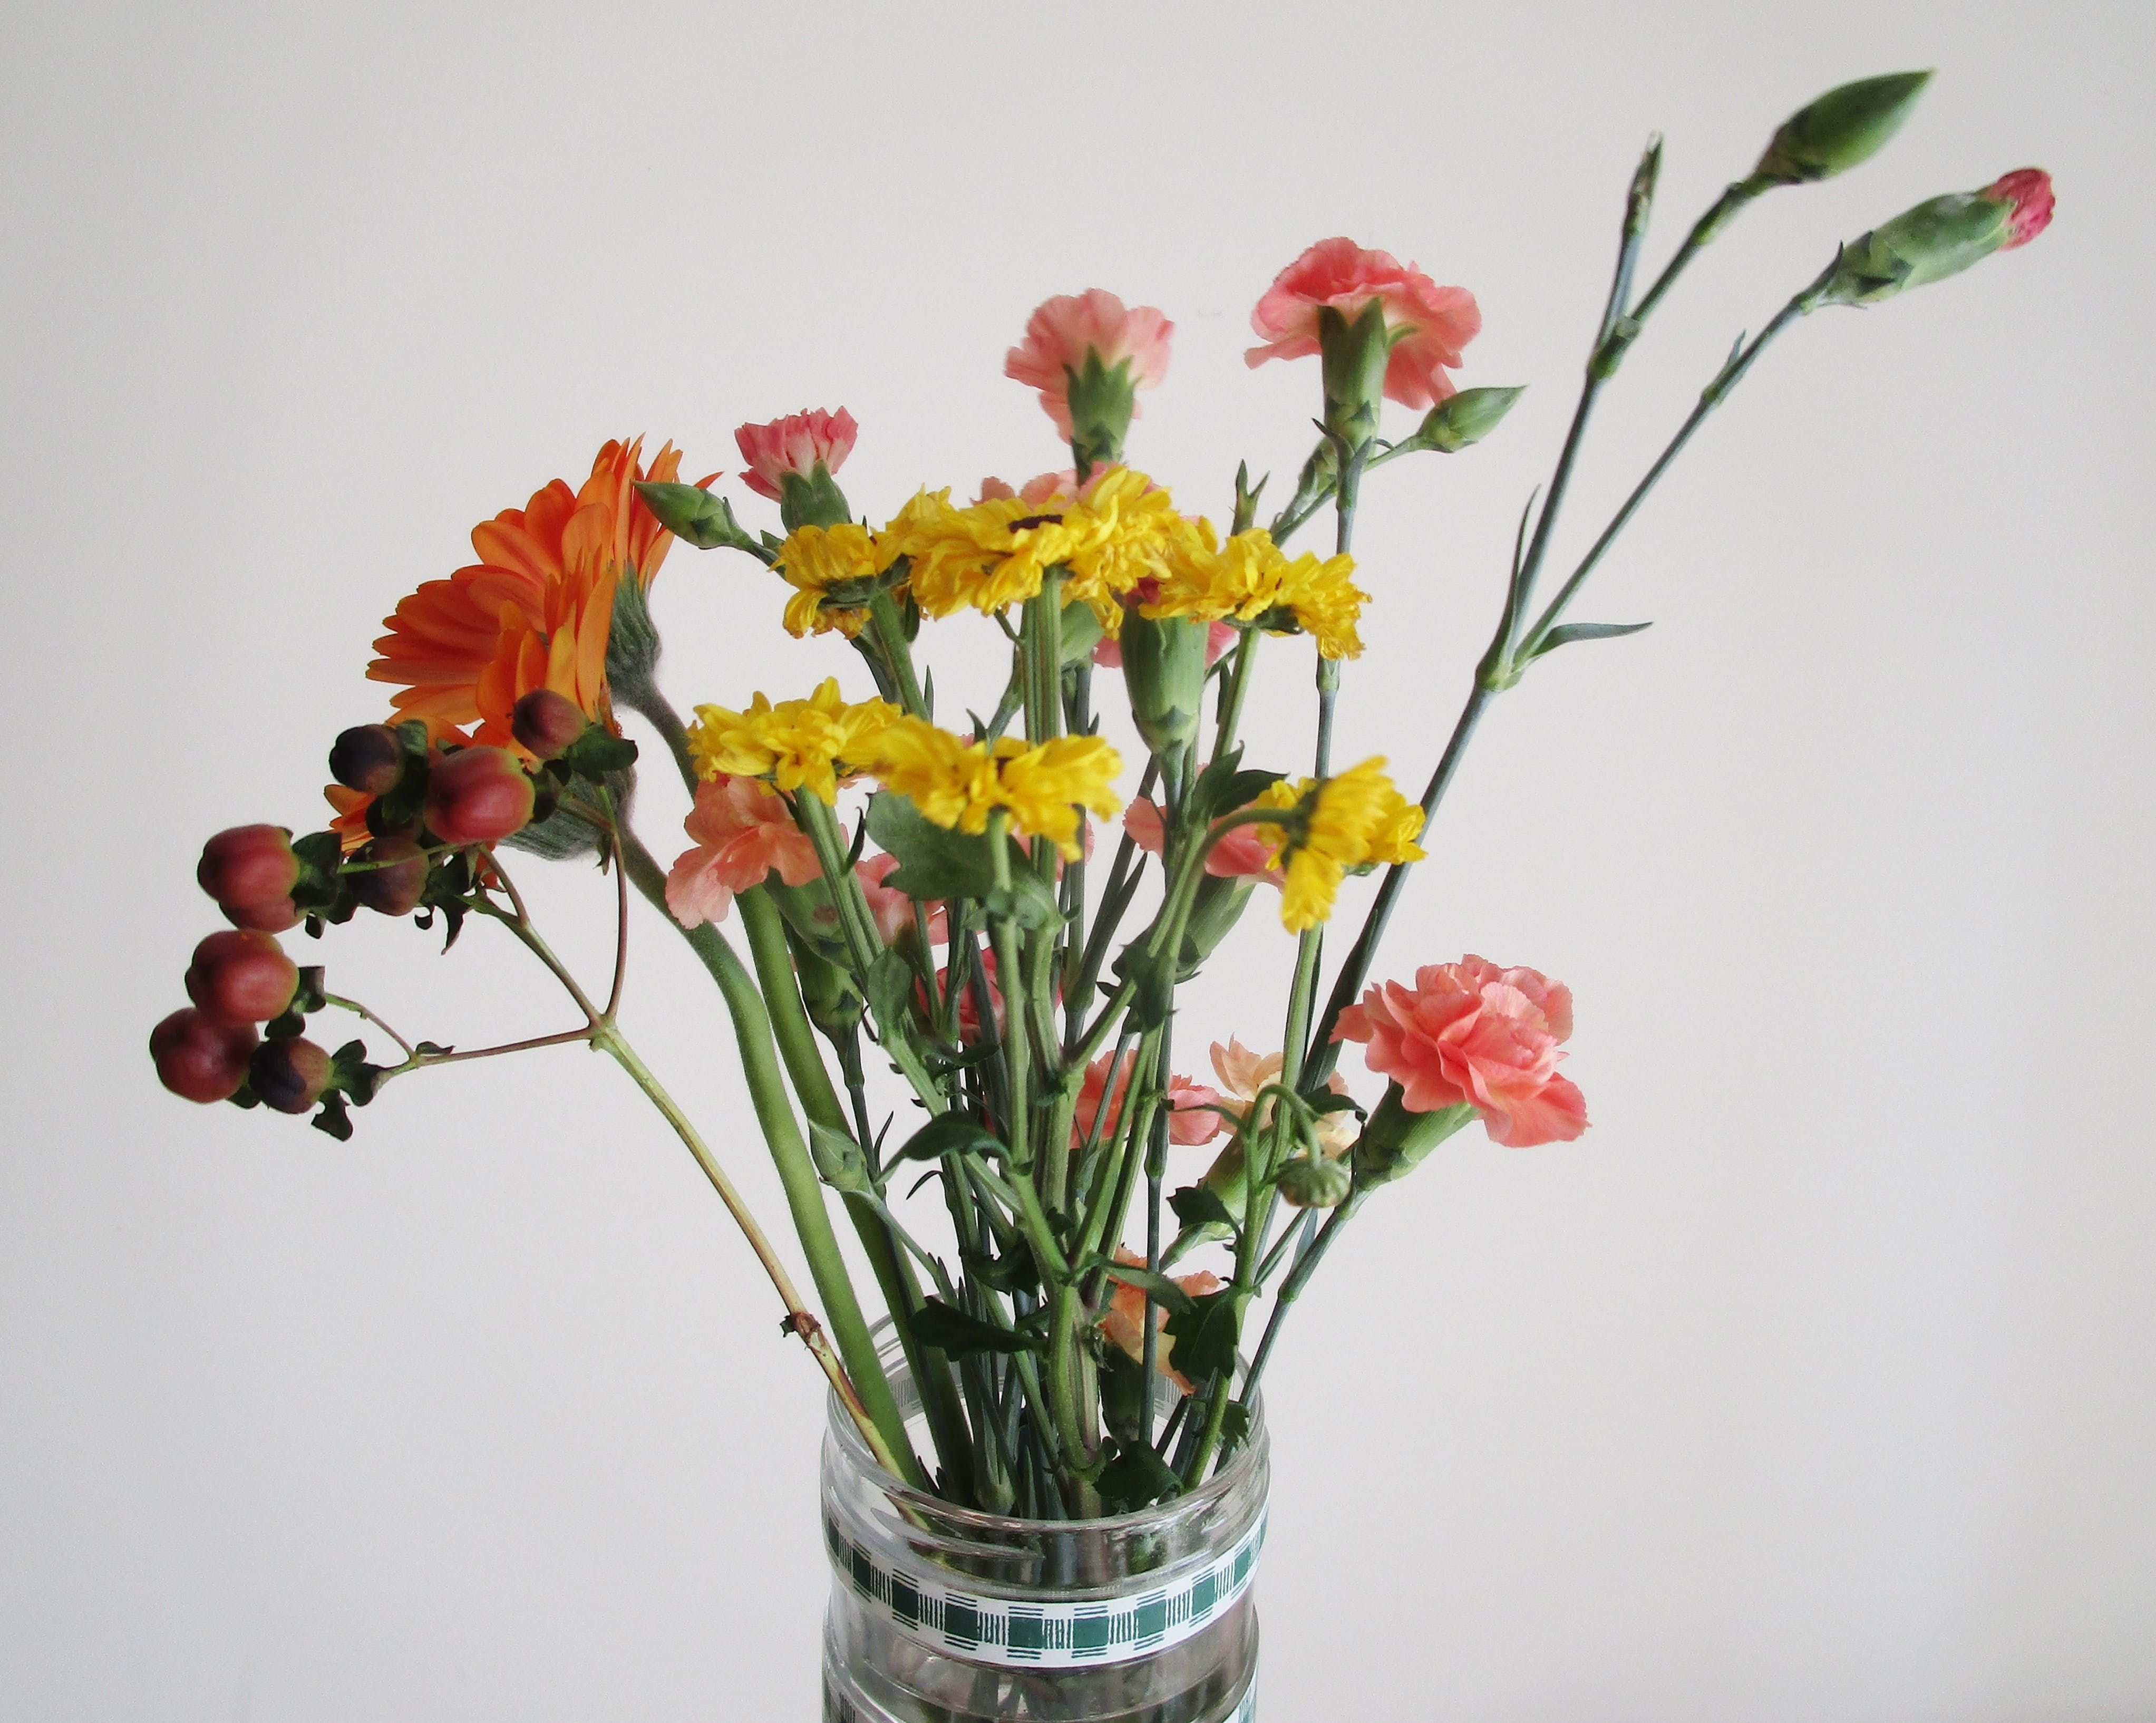 Clear Glass Vase With Red and Yellow Flowers